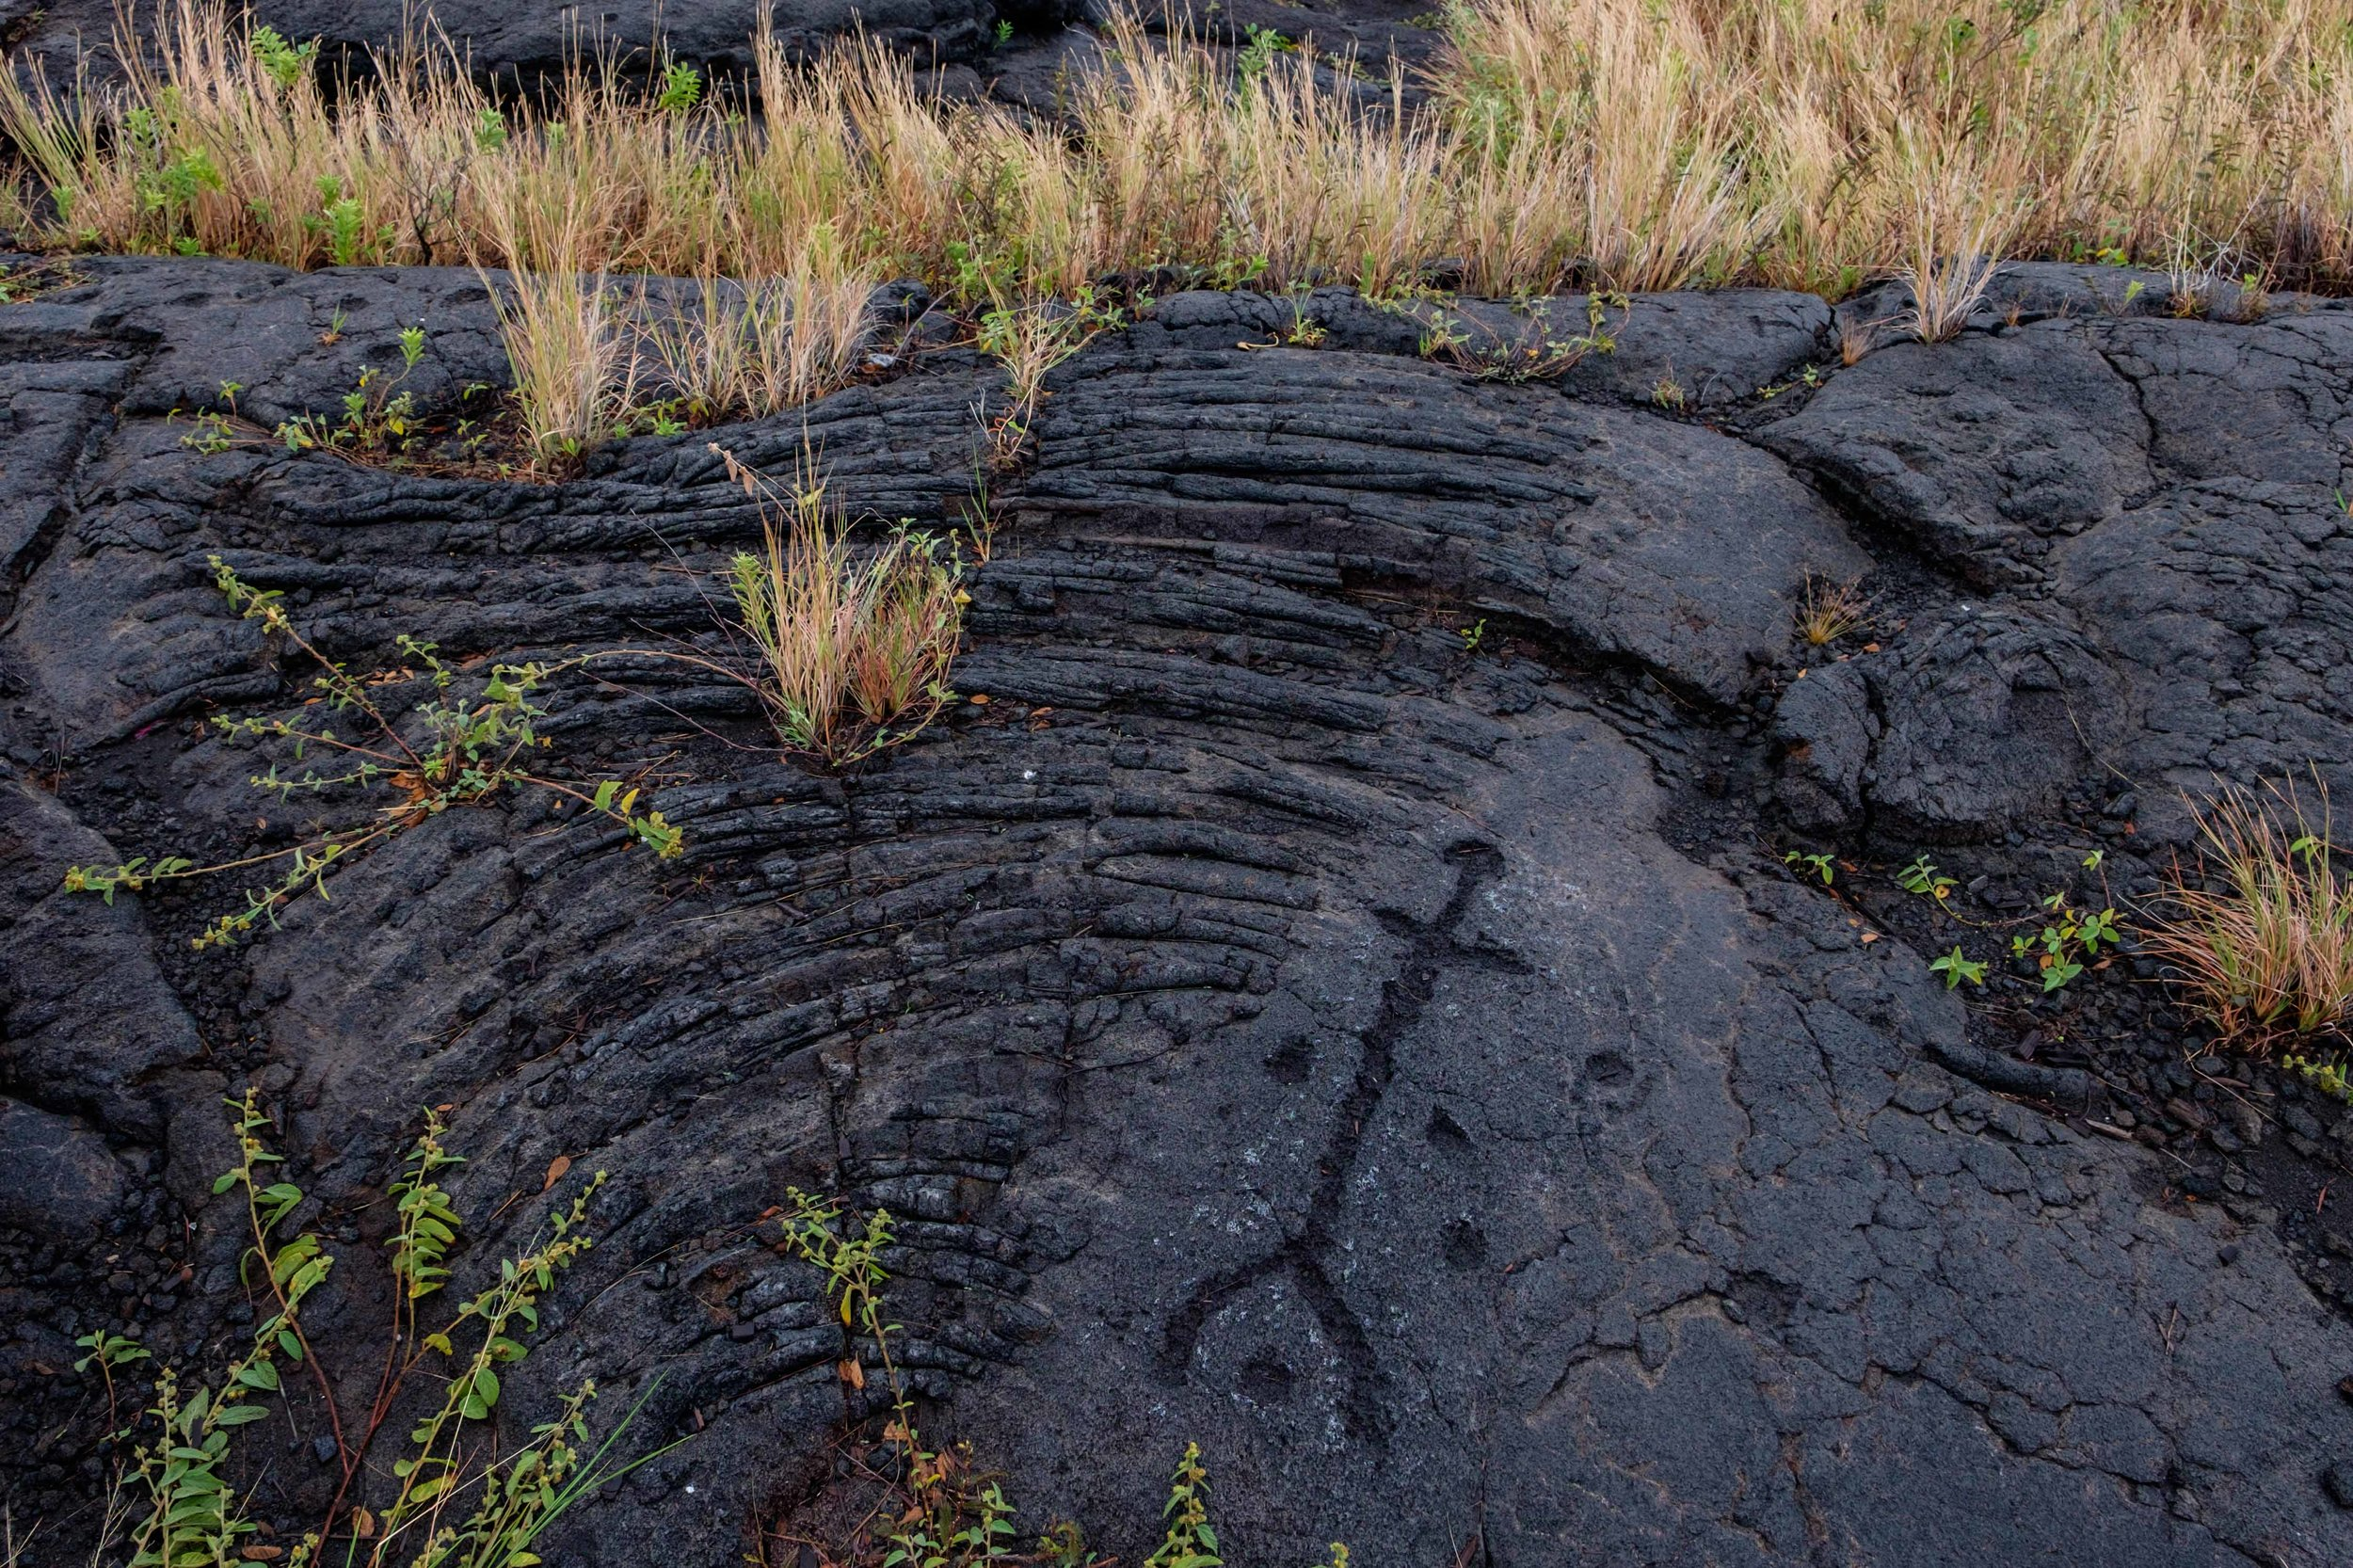 The petroglyphs have been carved on the lava itself, and have many shapes, including that of the human figure.